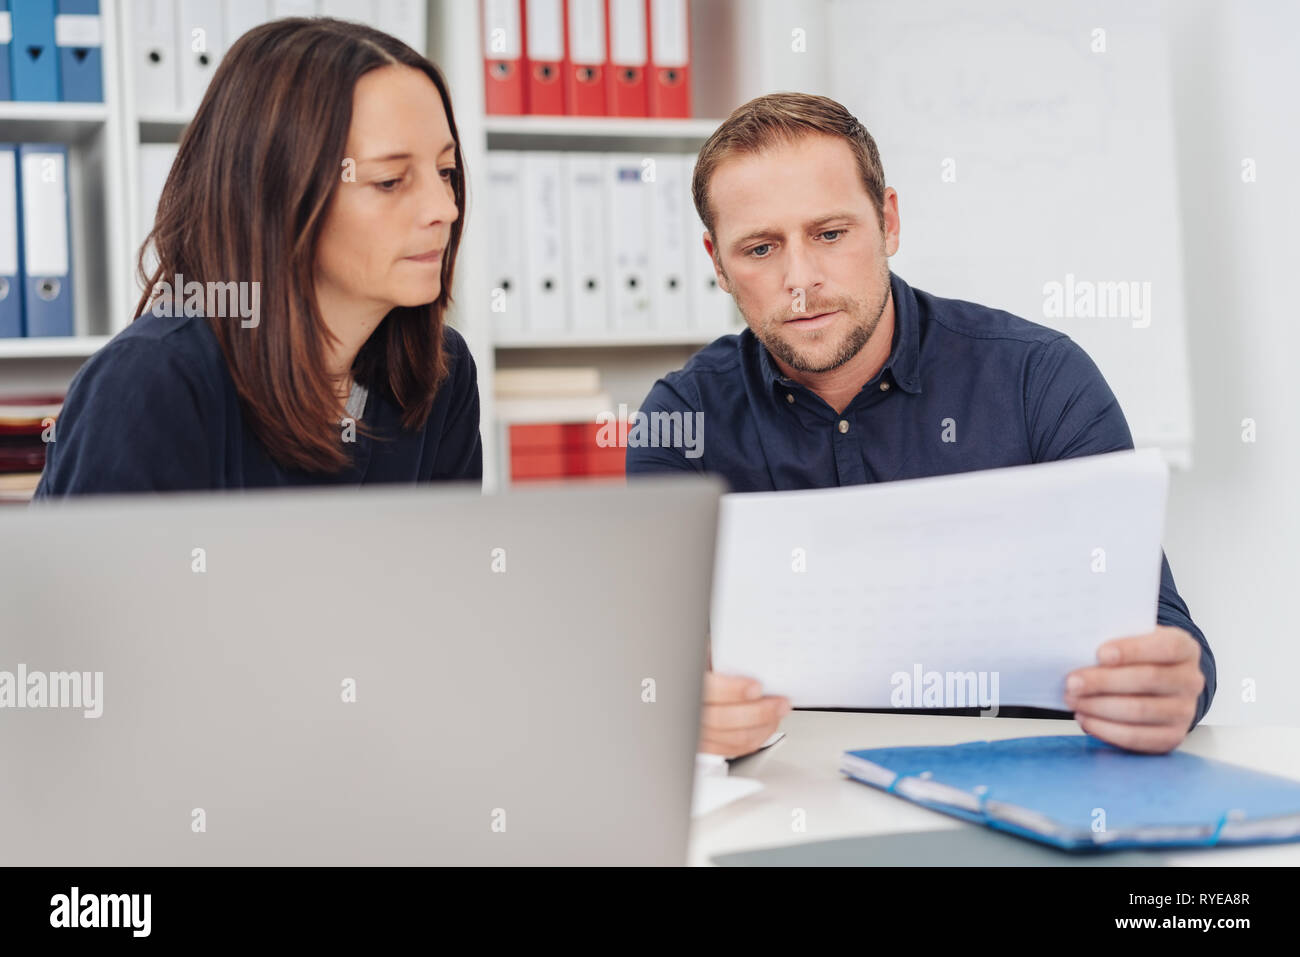 Business partners studying a document together with thoughtful serious expressions as they sit side by side at an office table in a close up view - Stock Image